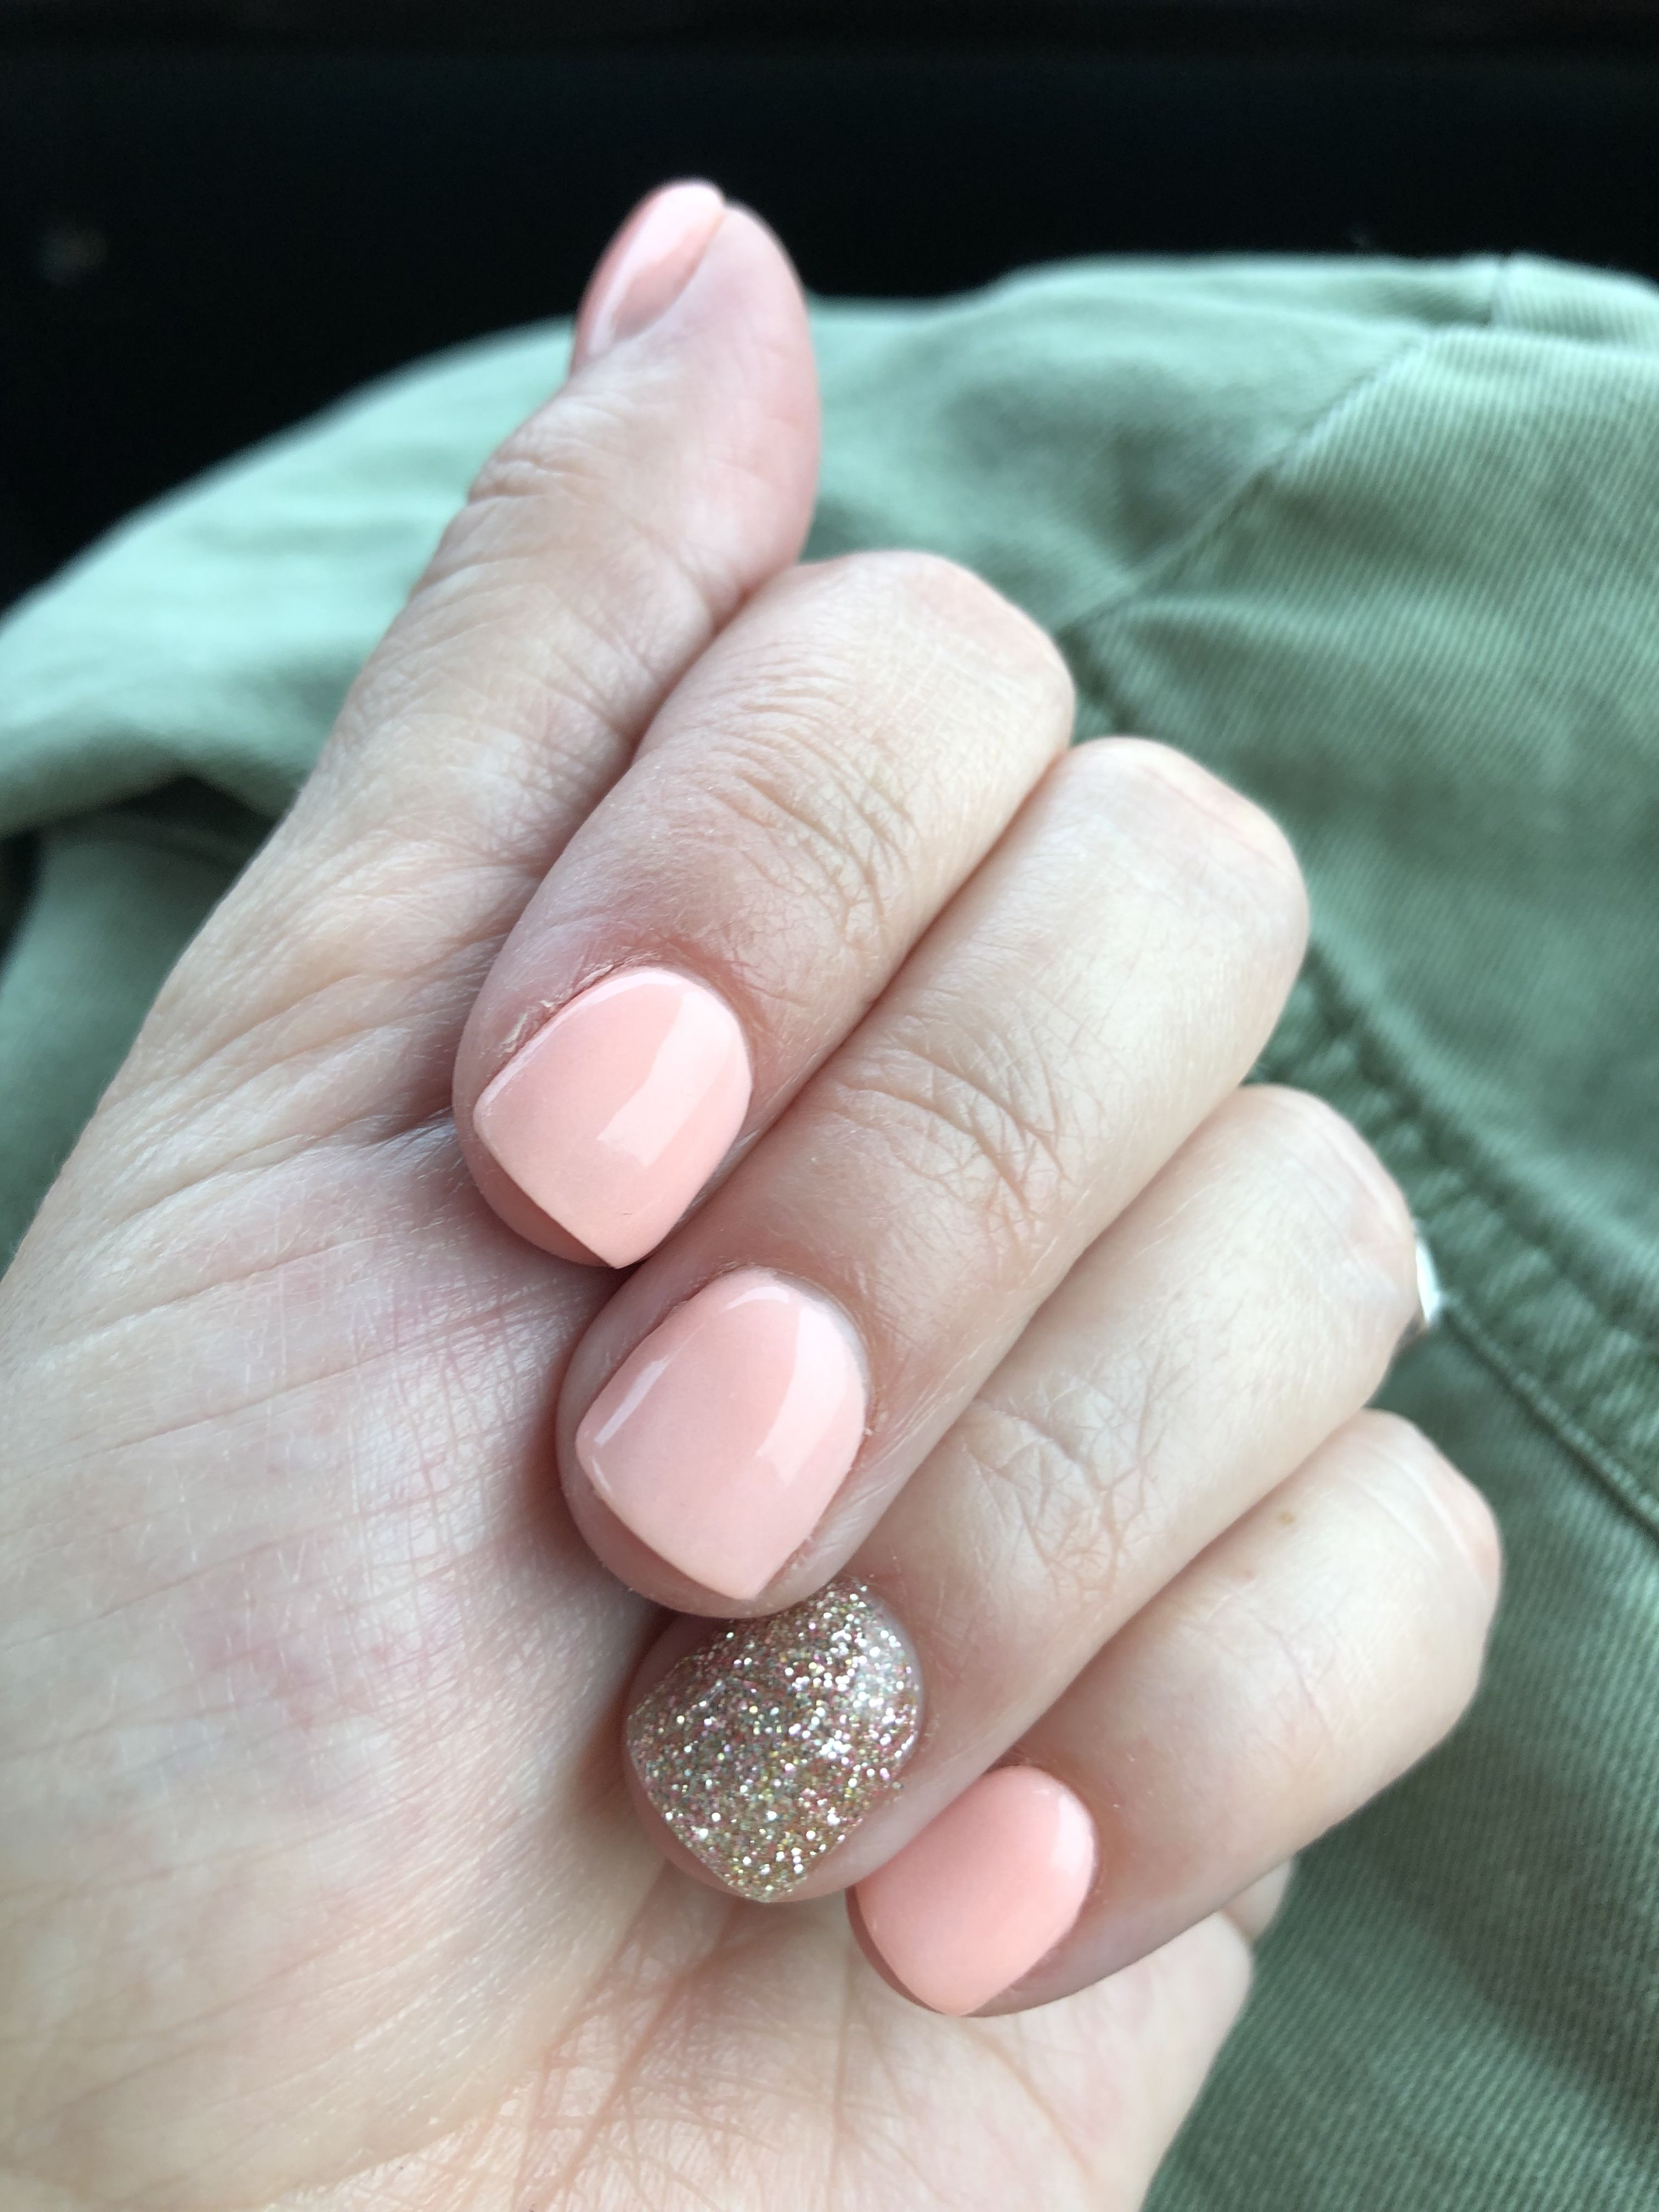 Pin By Hello Southern Beauty On Nails Revel Nail Dip Powder Nail Dipping Powder Colors Revel Nail Dip